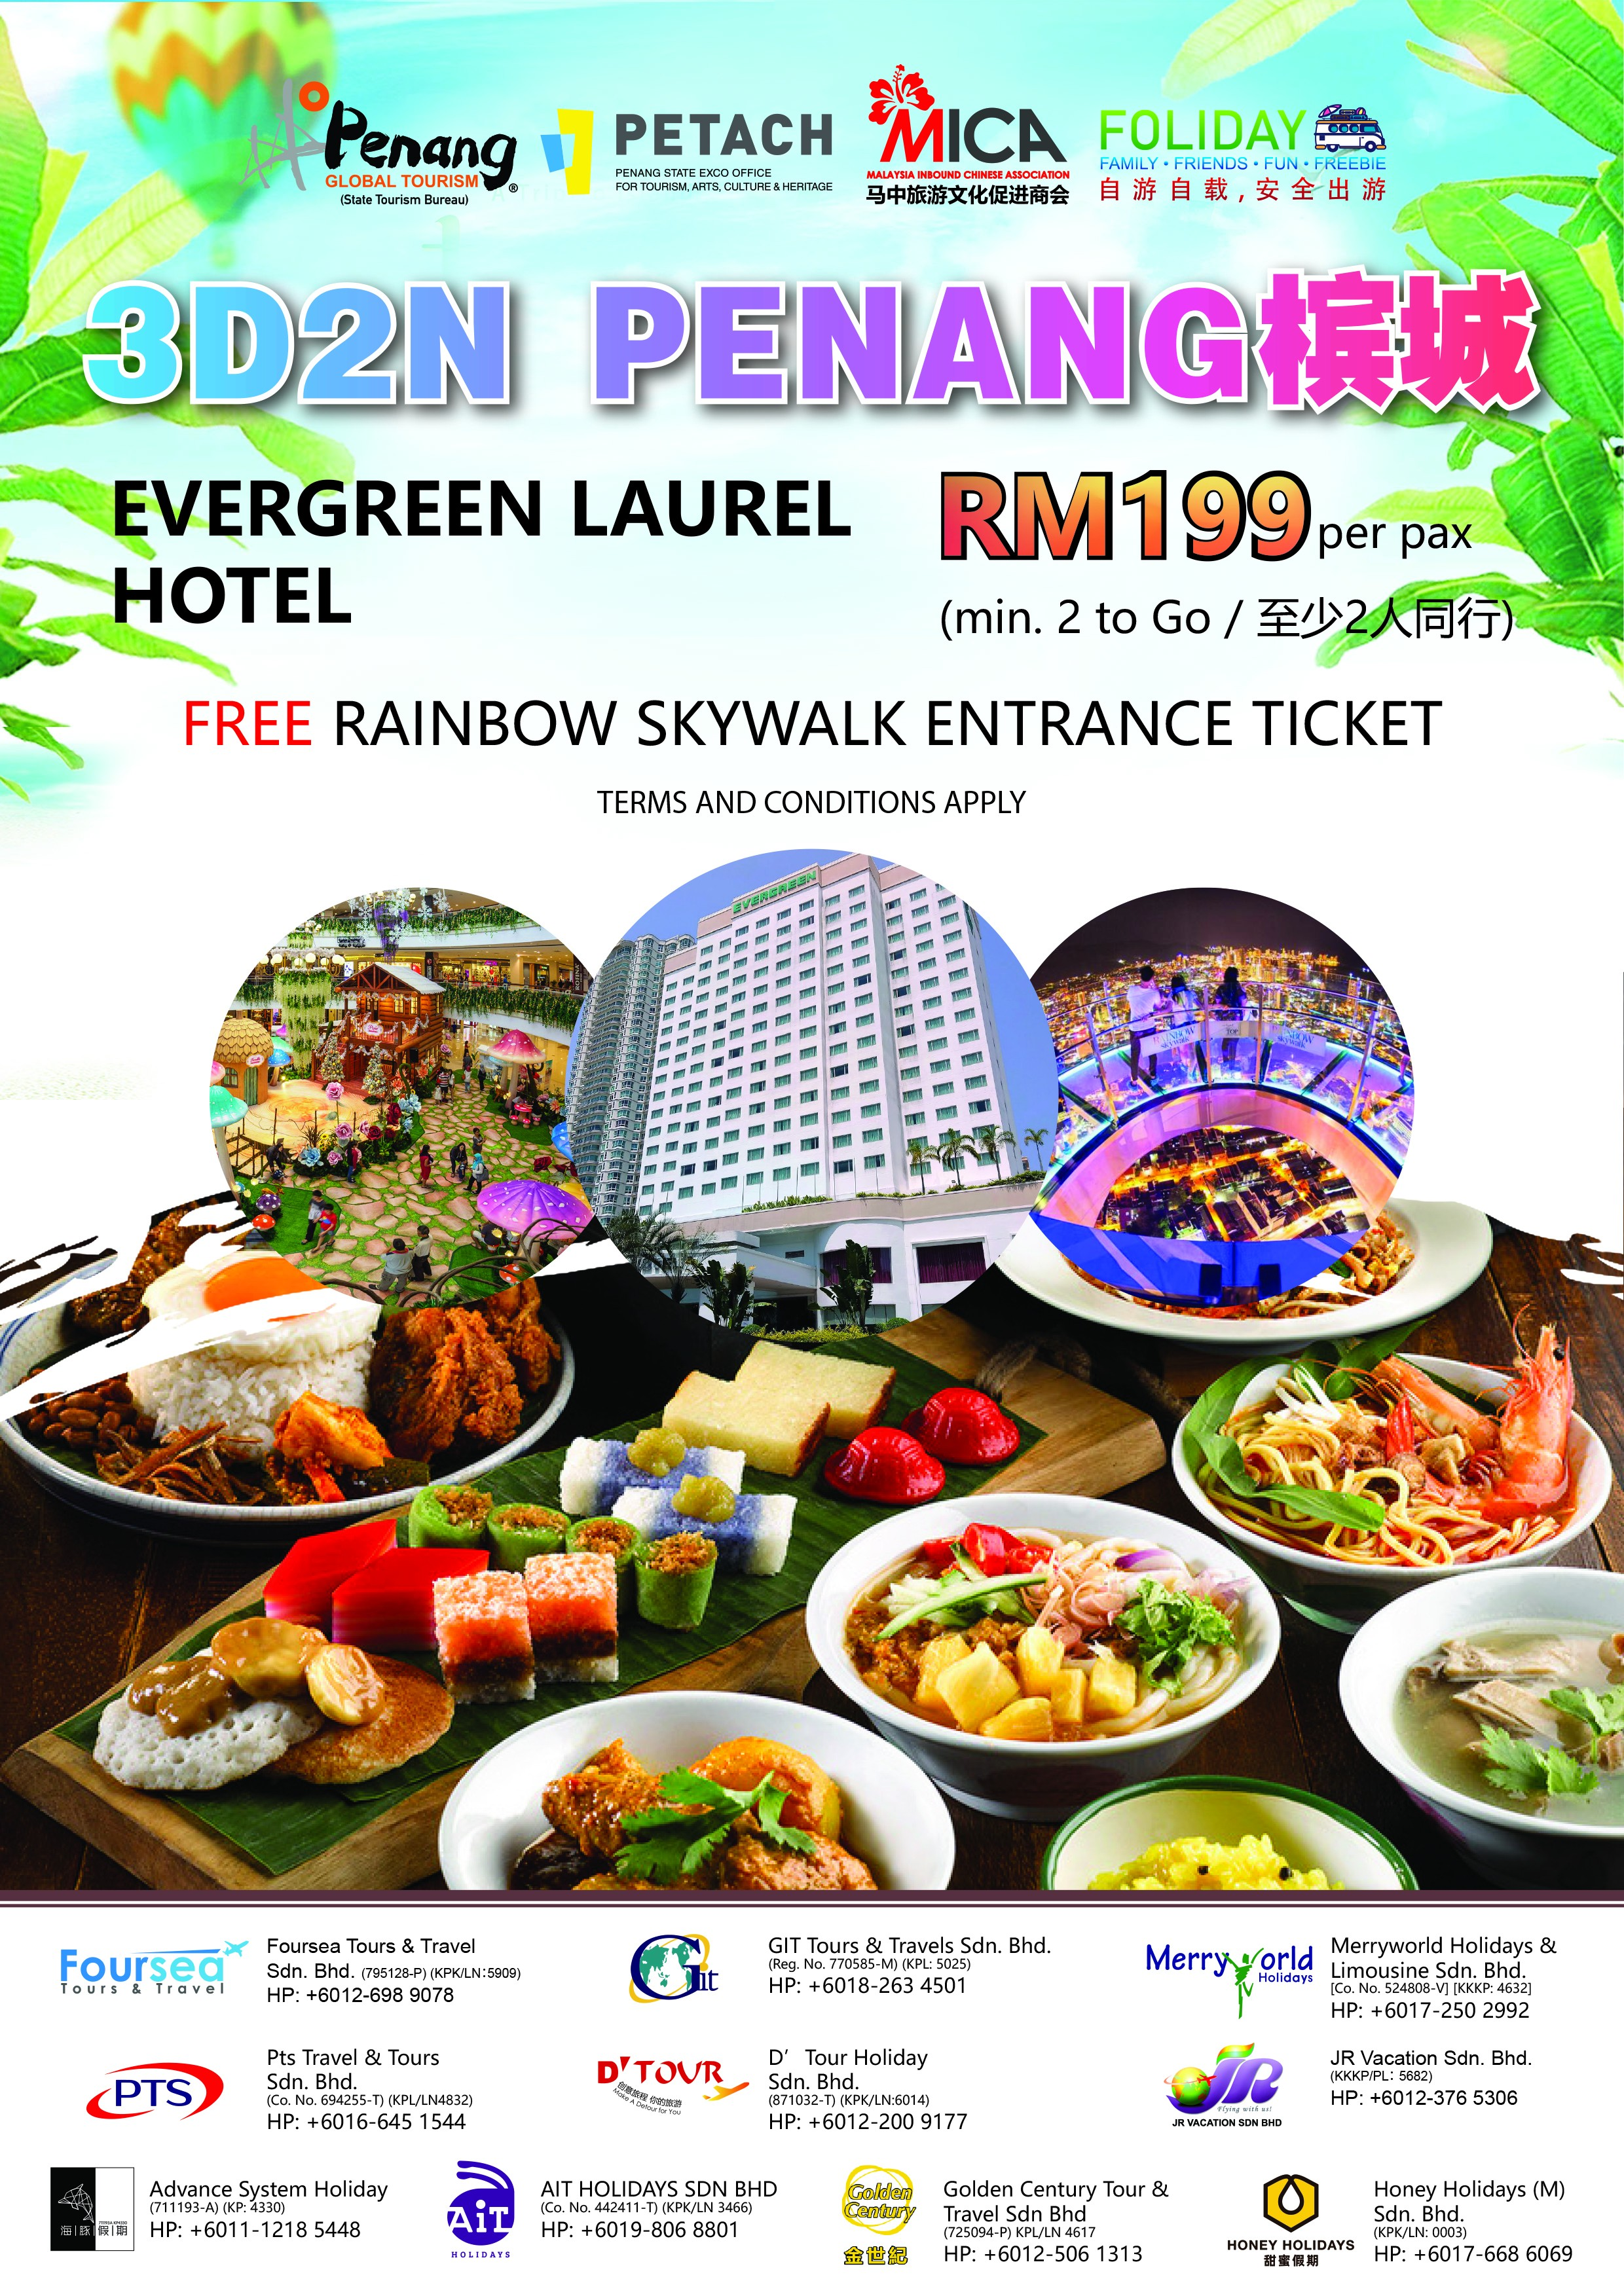 3D2N Penang - Evergreen Laurel Hotel